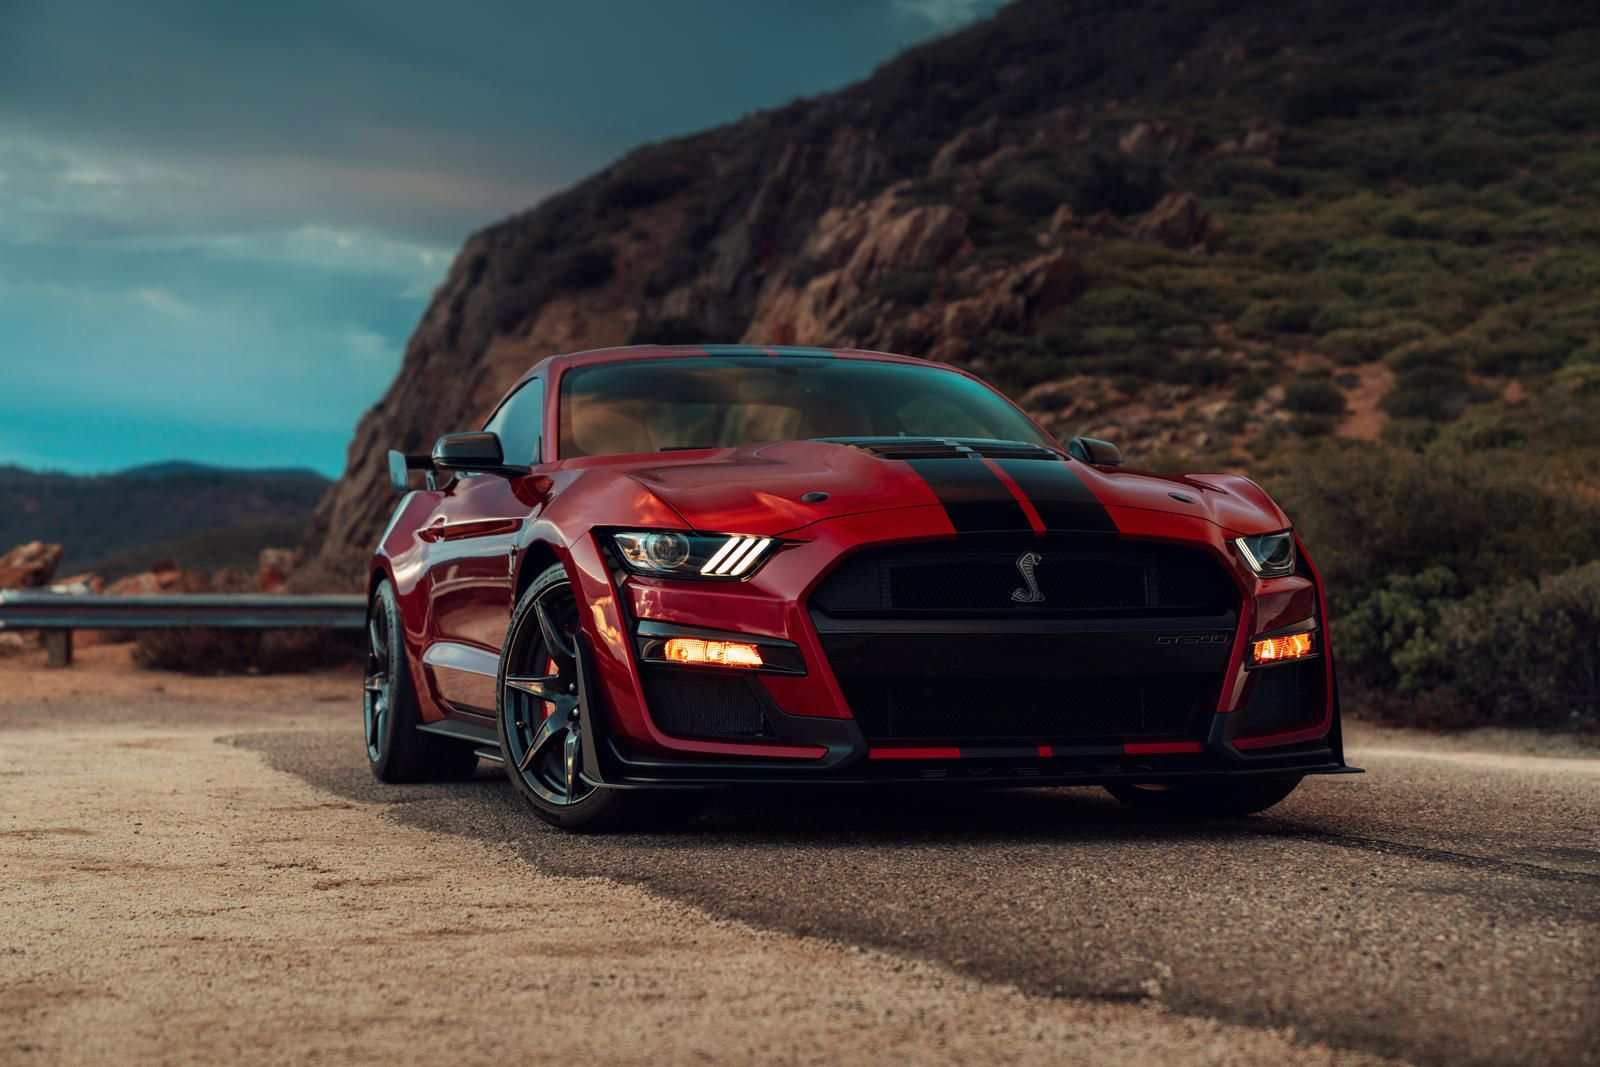 2020 Ford Mustang Shelby Gt500 First Drive Review The Snake King Returns Ford S Ultimate Mustang Is Bac Shelby Gt500 Ford Mustang Shelby Gt500 Mustang Shelby